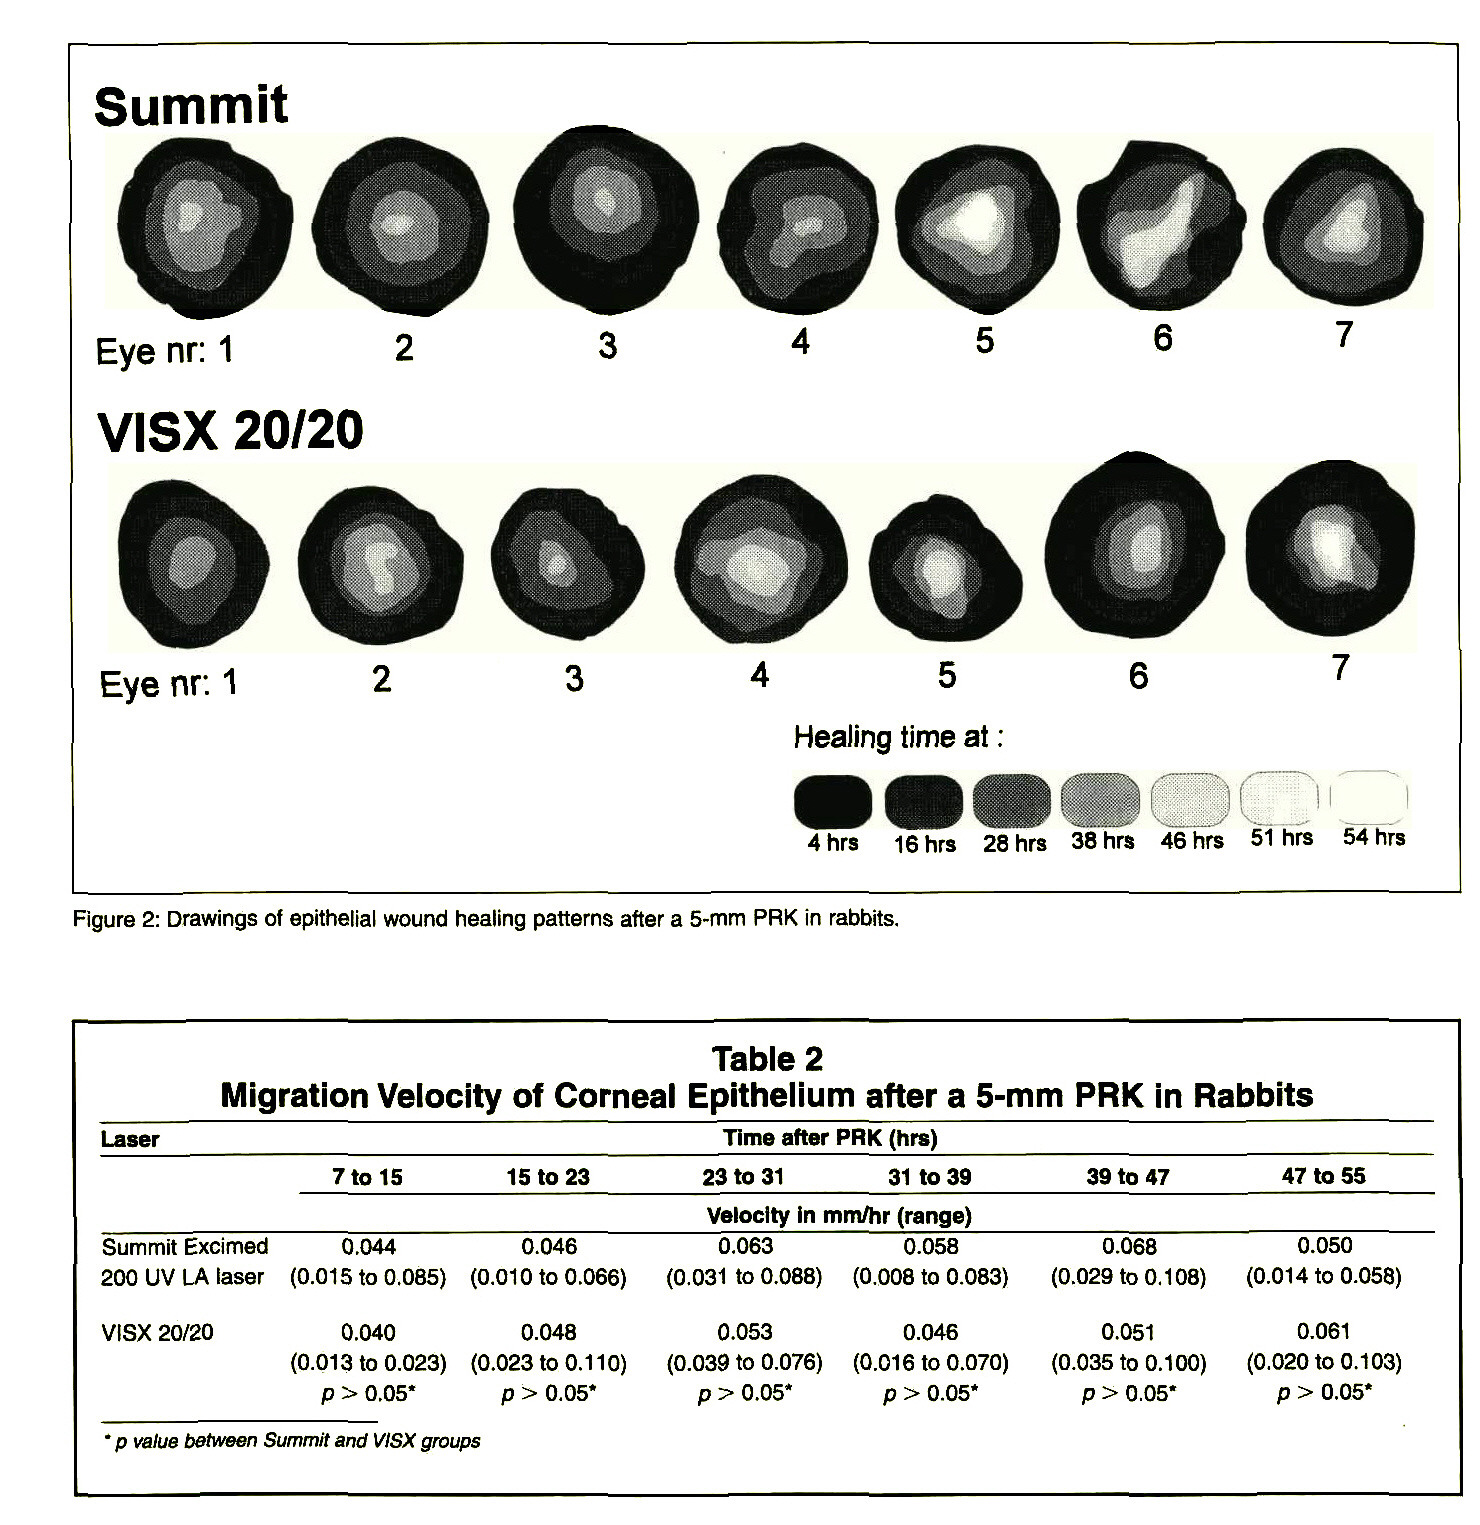 Figure 2: Drawings of epithelial wound healing patterns after a 5-mm PRK in rabbits.Table 2Migration Velocity of Corneal Epithelium after a 5-mm PRK in Rabbits